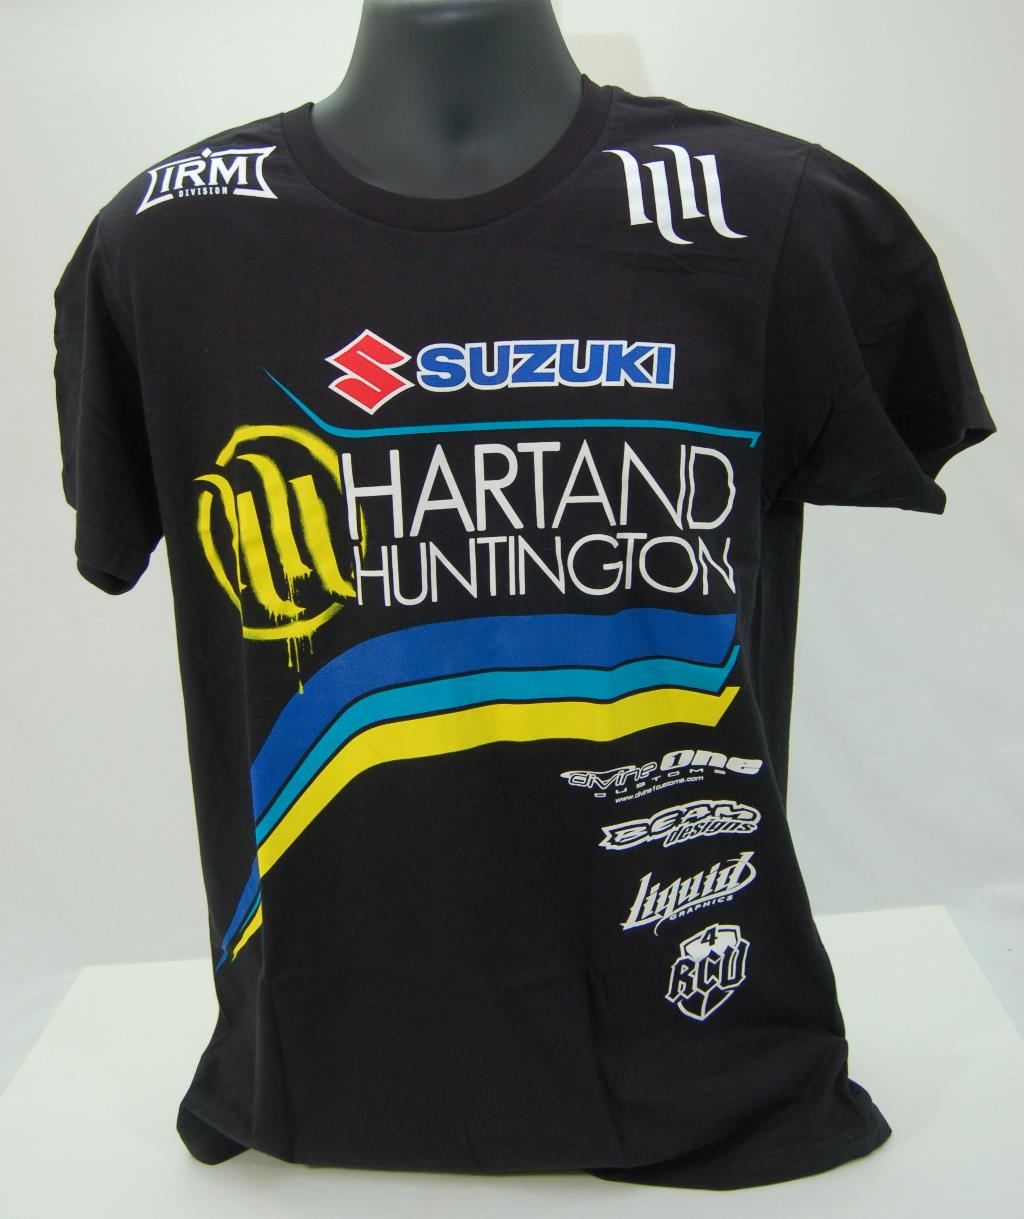 suzuki hart huntington retro t shirt black ebay. Black Bedroom Furniture Sets. Home Design Ideas